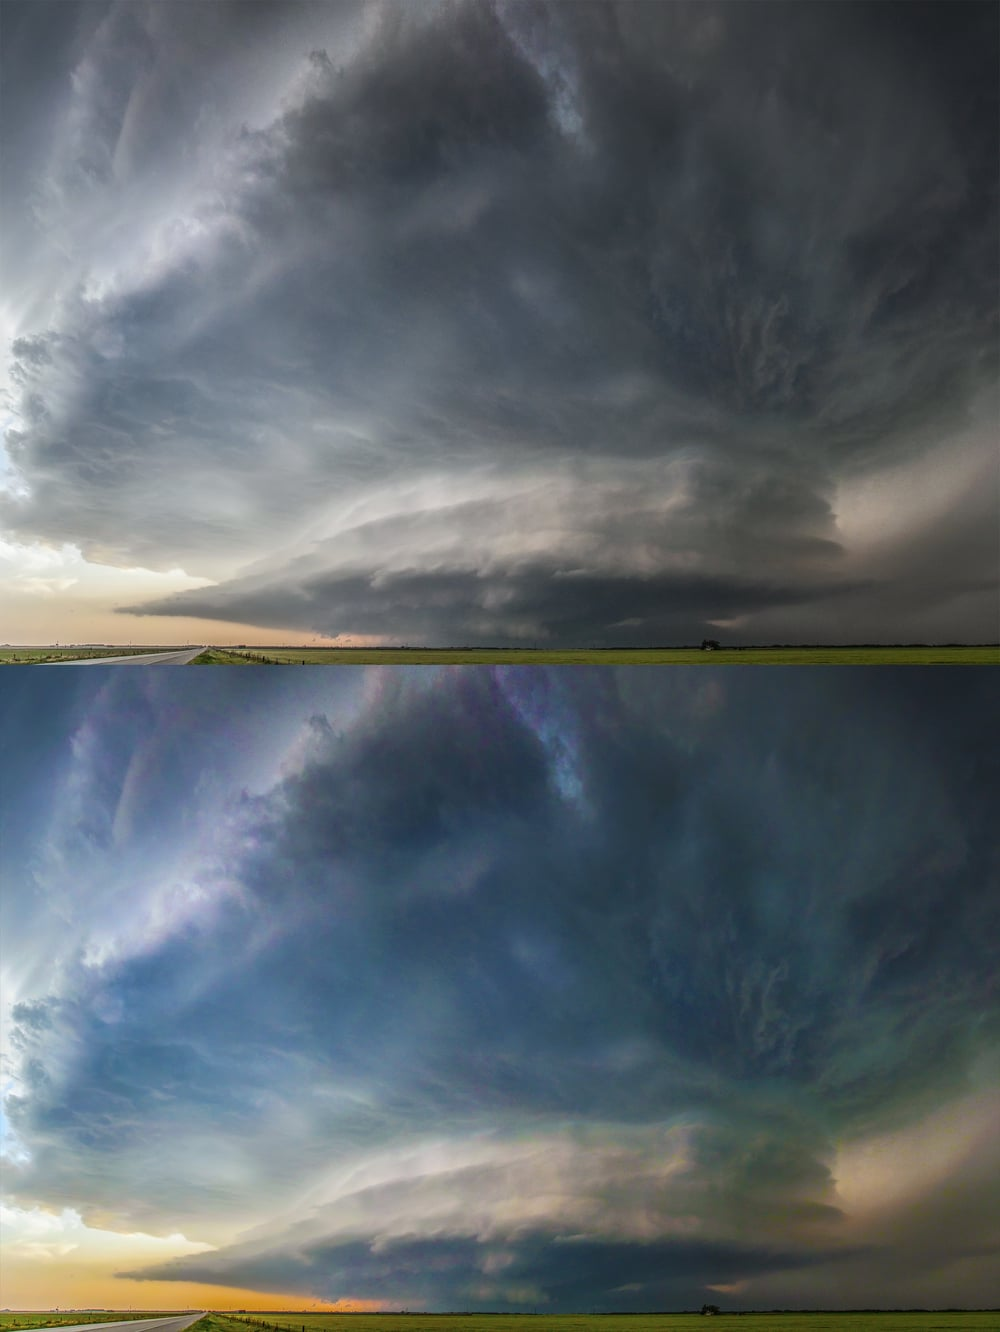 Savannah Williams true to life edit of the Waurika supercell and my saturated special below.